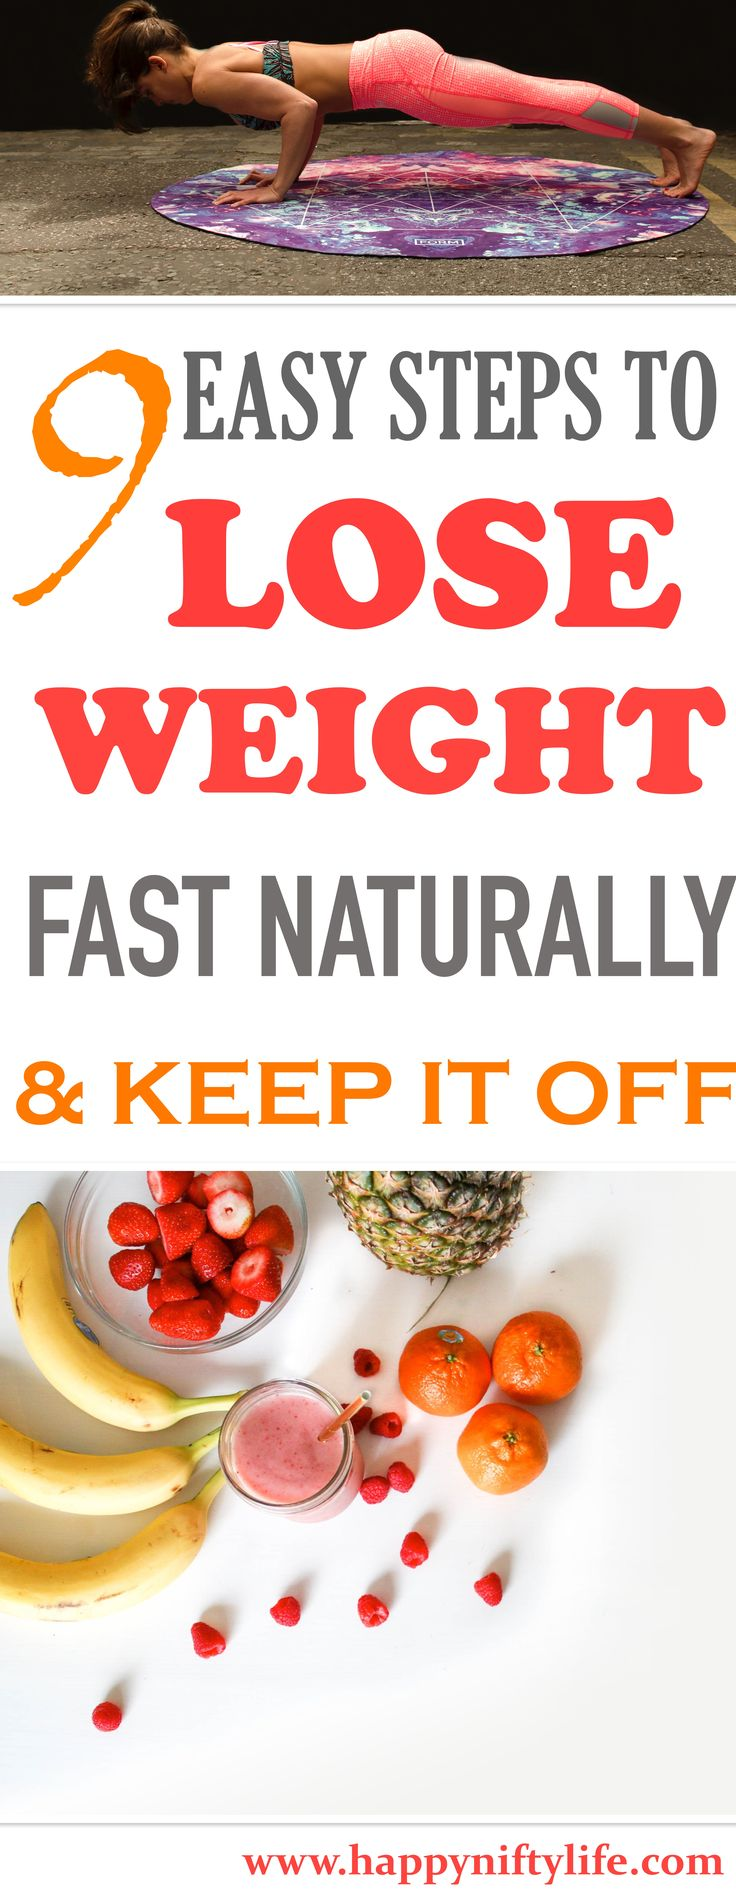 Stop going through yo-yo diets today. Here are some really easy weight loss hacks that are super helpful for shedding off pounds fast. Keep the weight off naturally and permanently. #healthyeating #weightloss